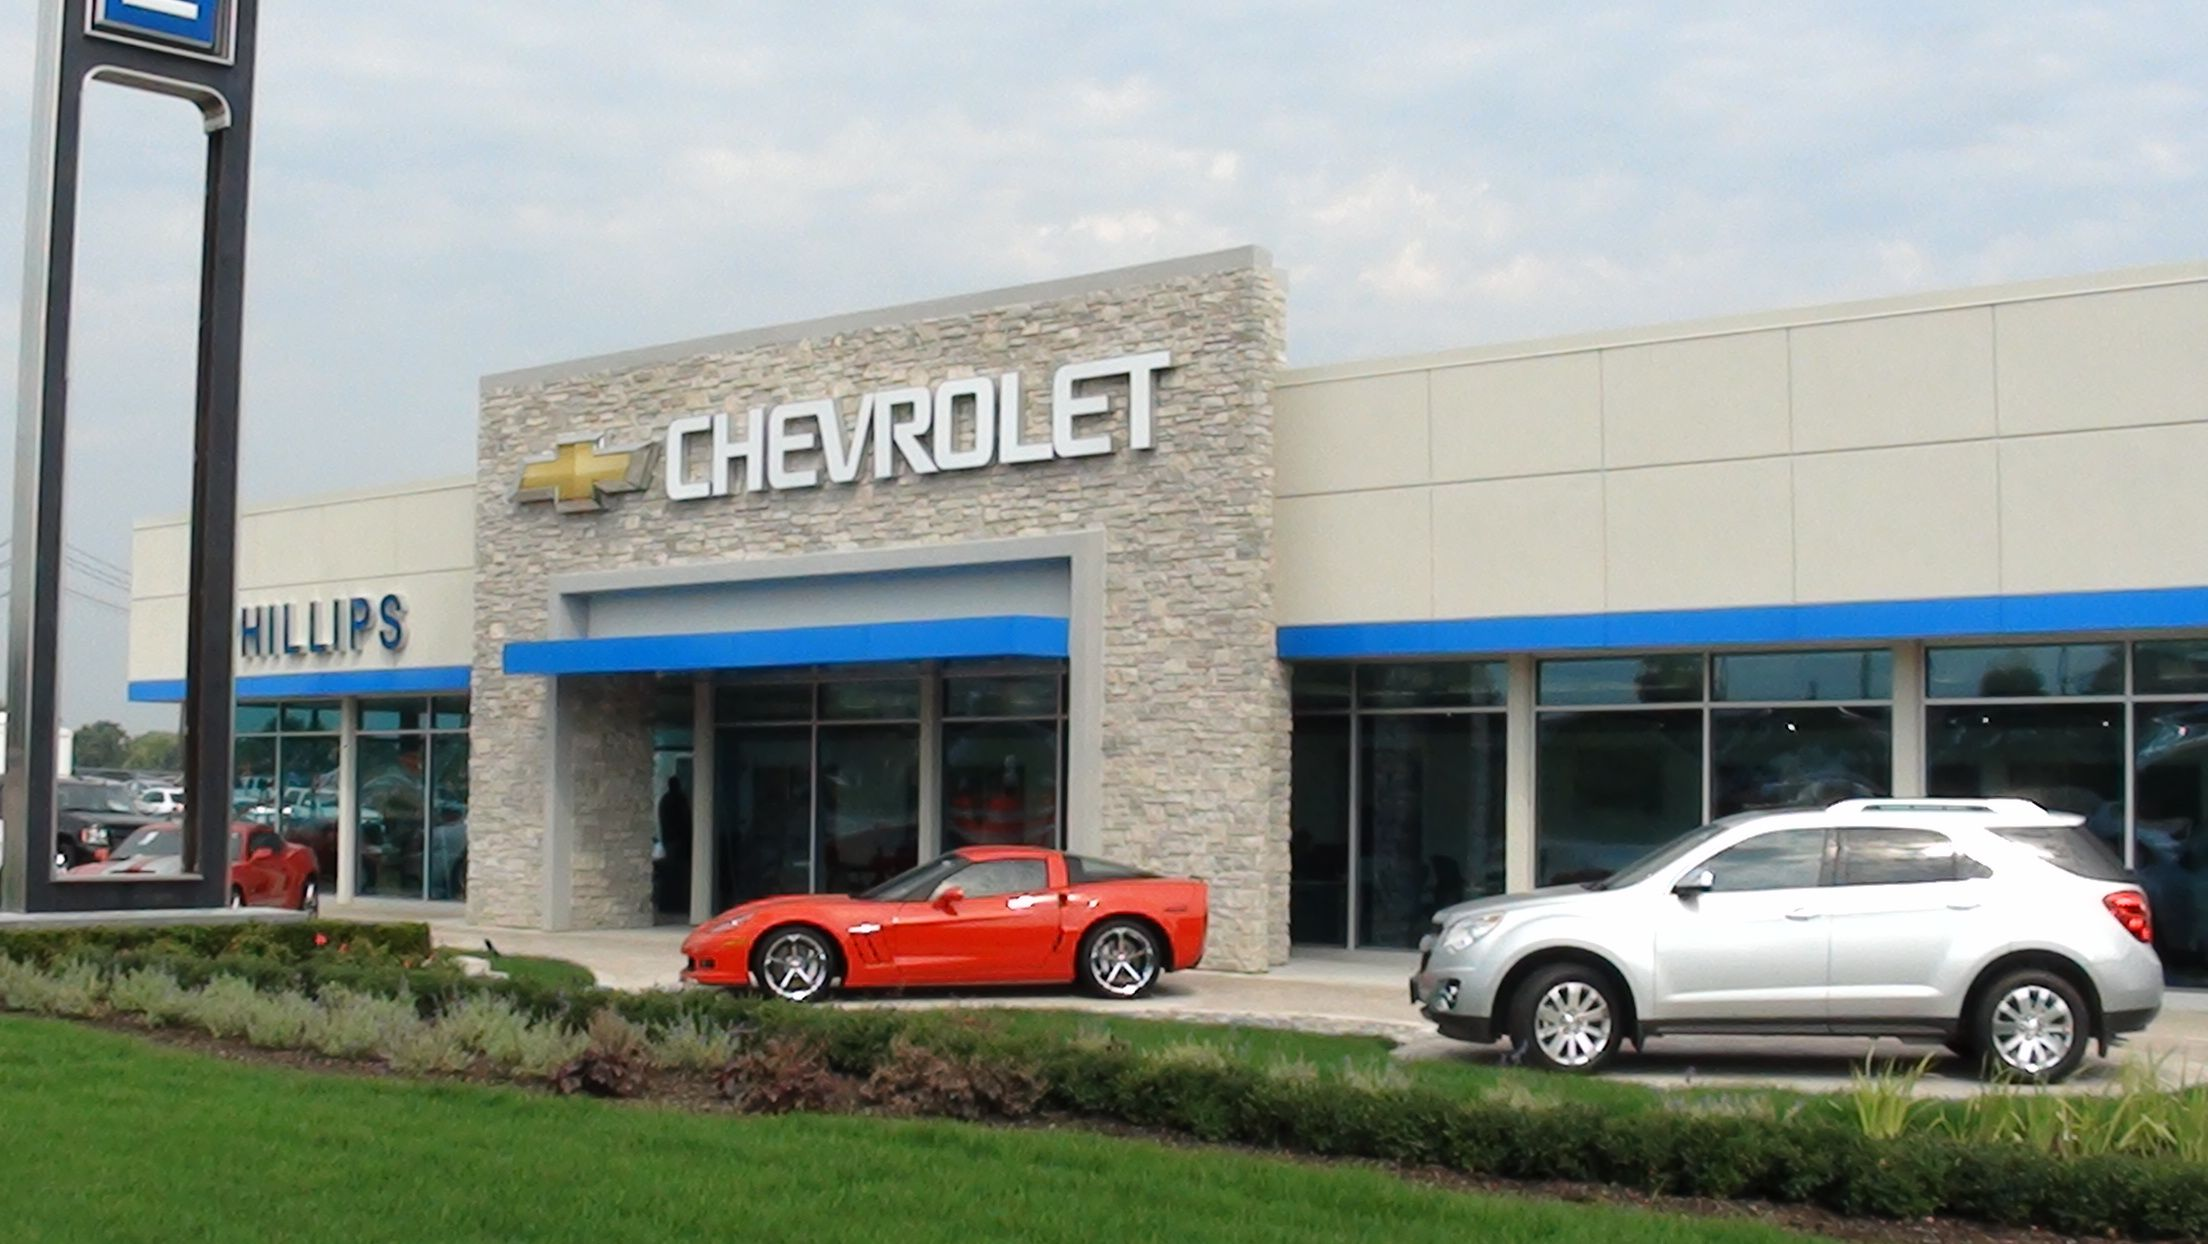 Phillips Chevrolet of Lansing Now Open Torrence Ave Lansing